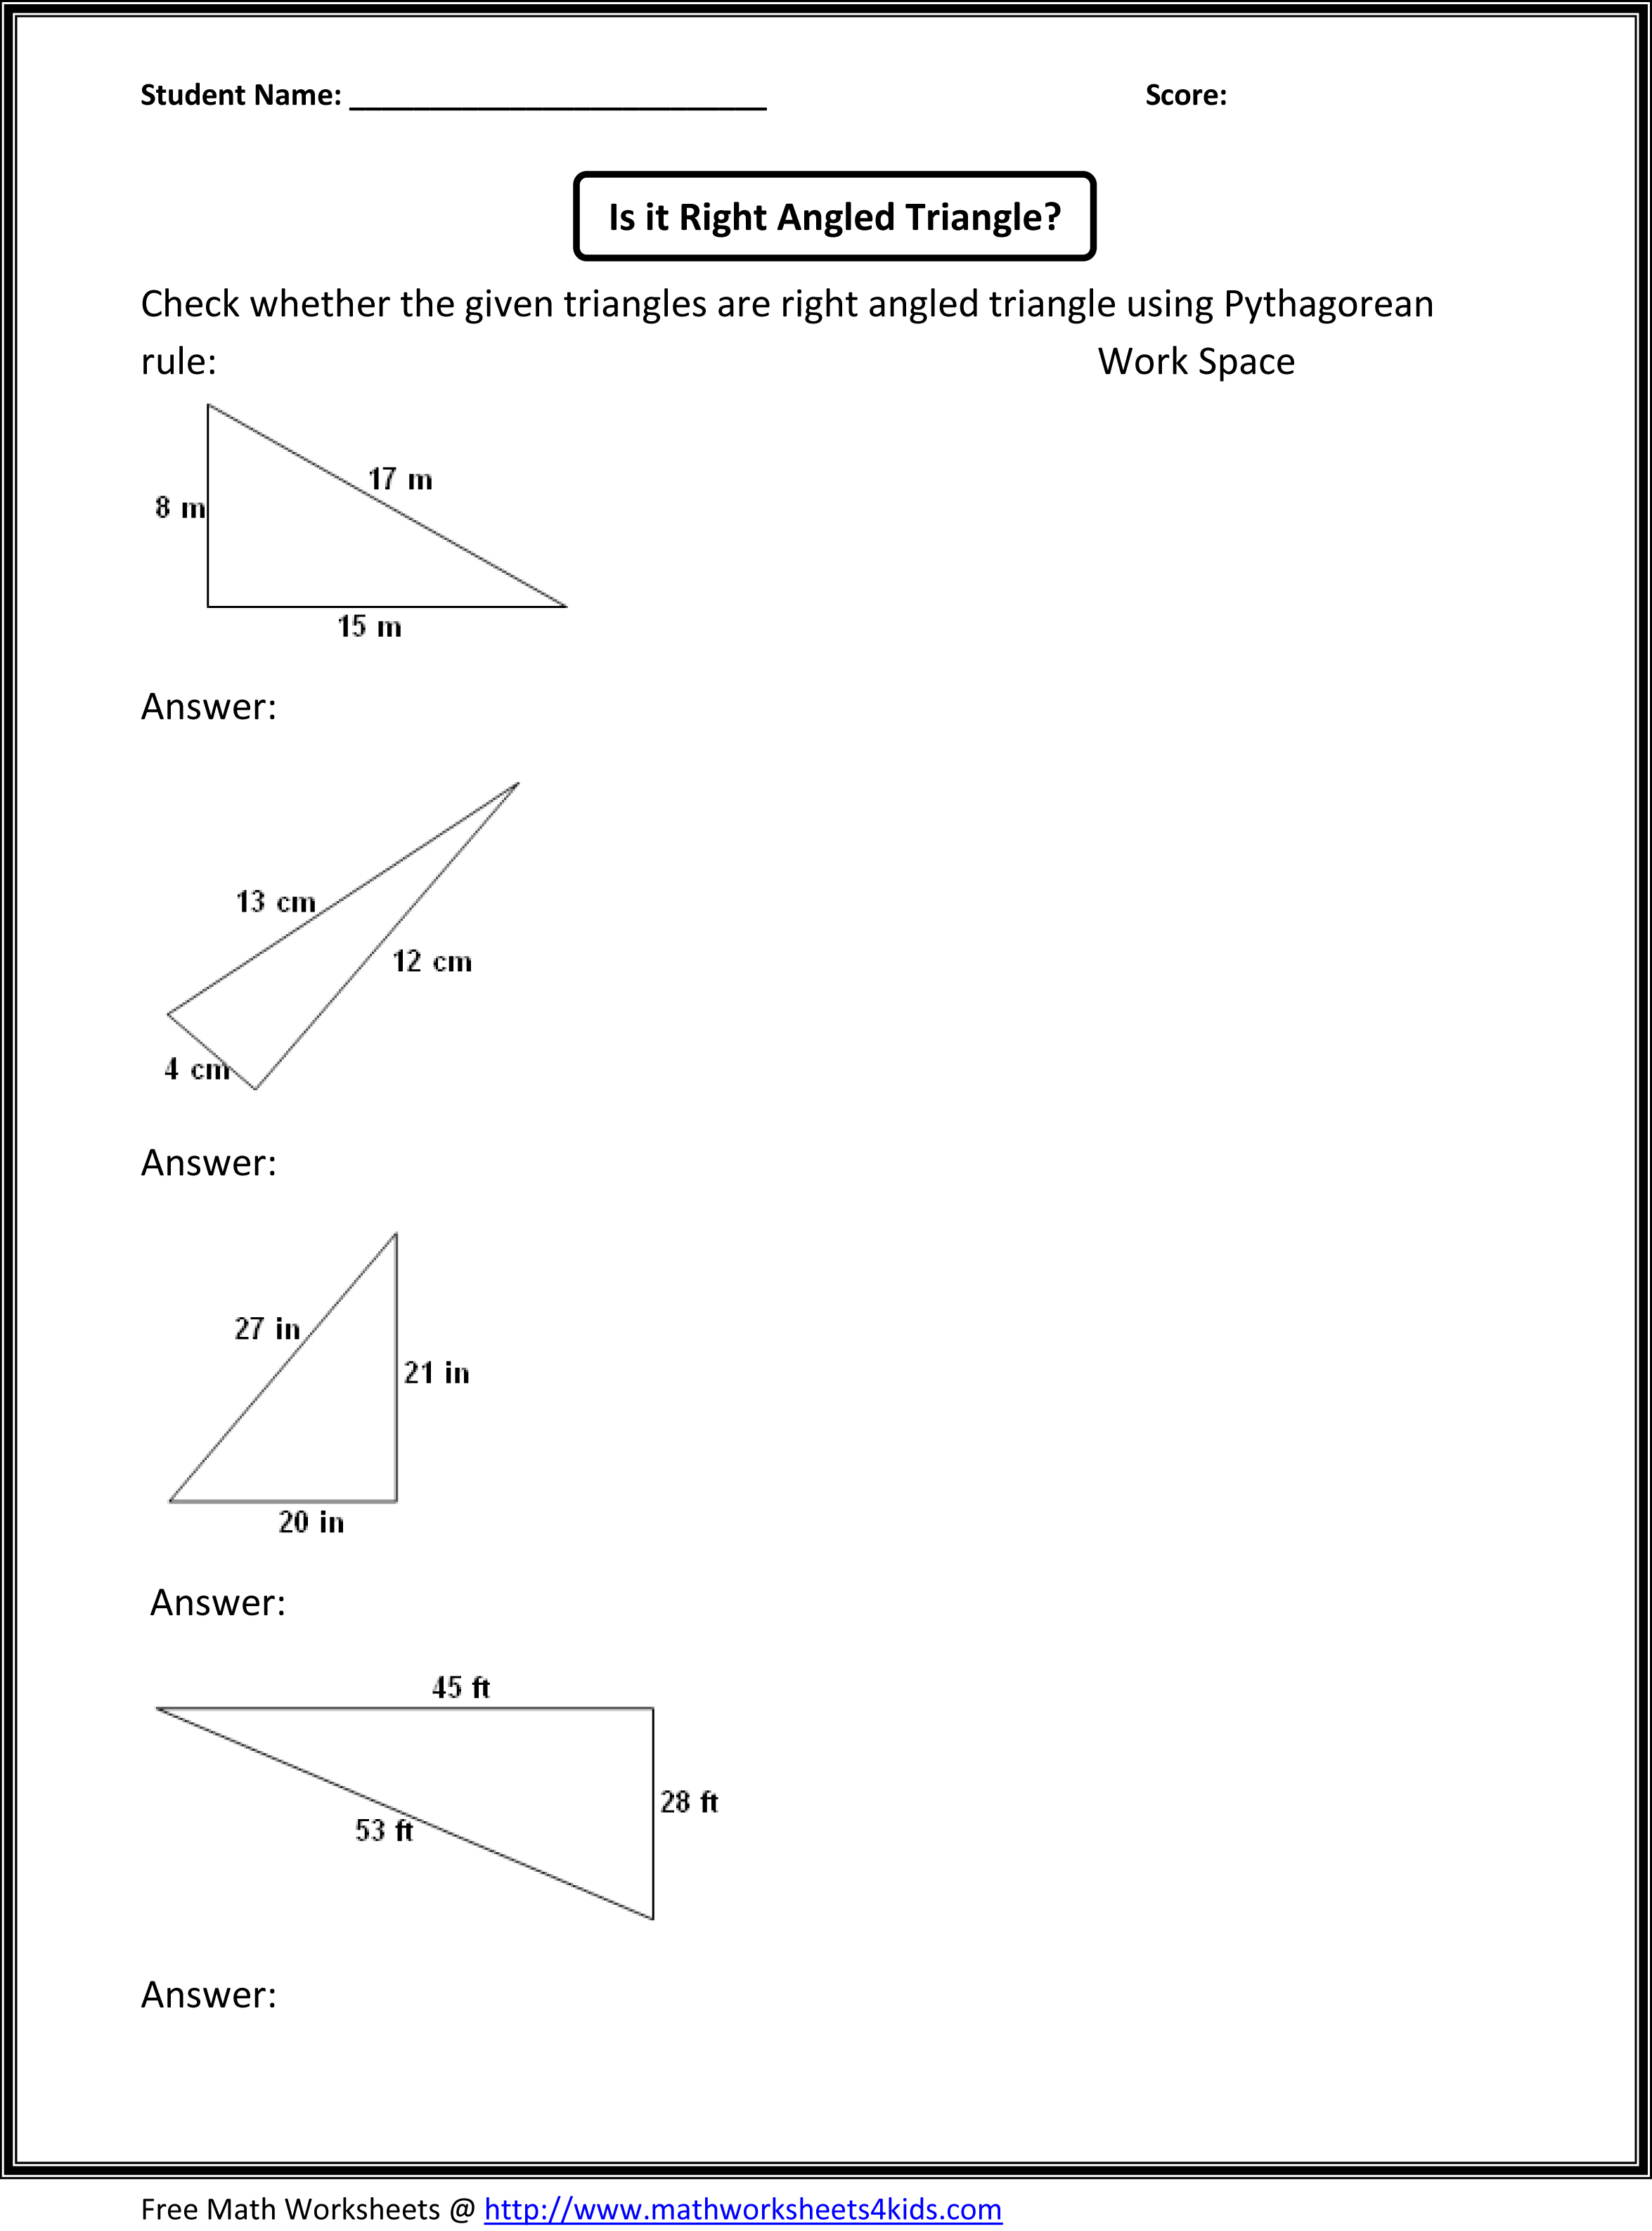 Grade 8 Math Worksheets Free Worksheets Library – Math Worksheet for Grade 8